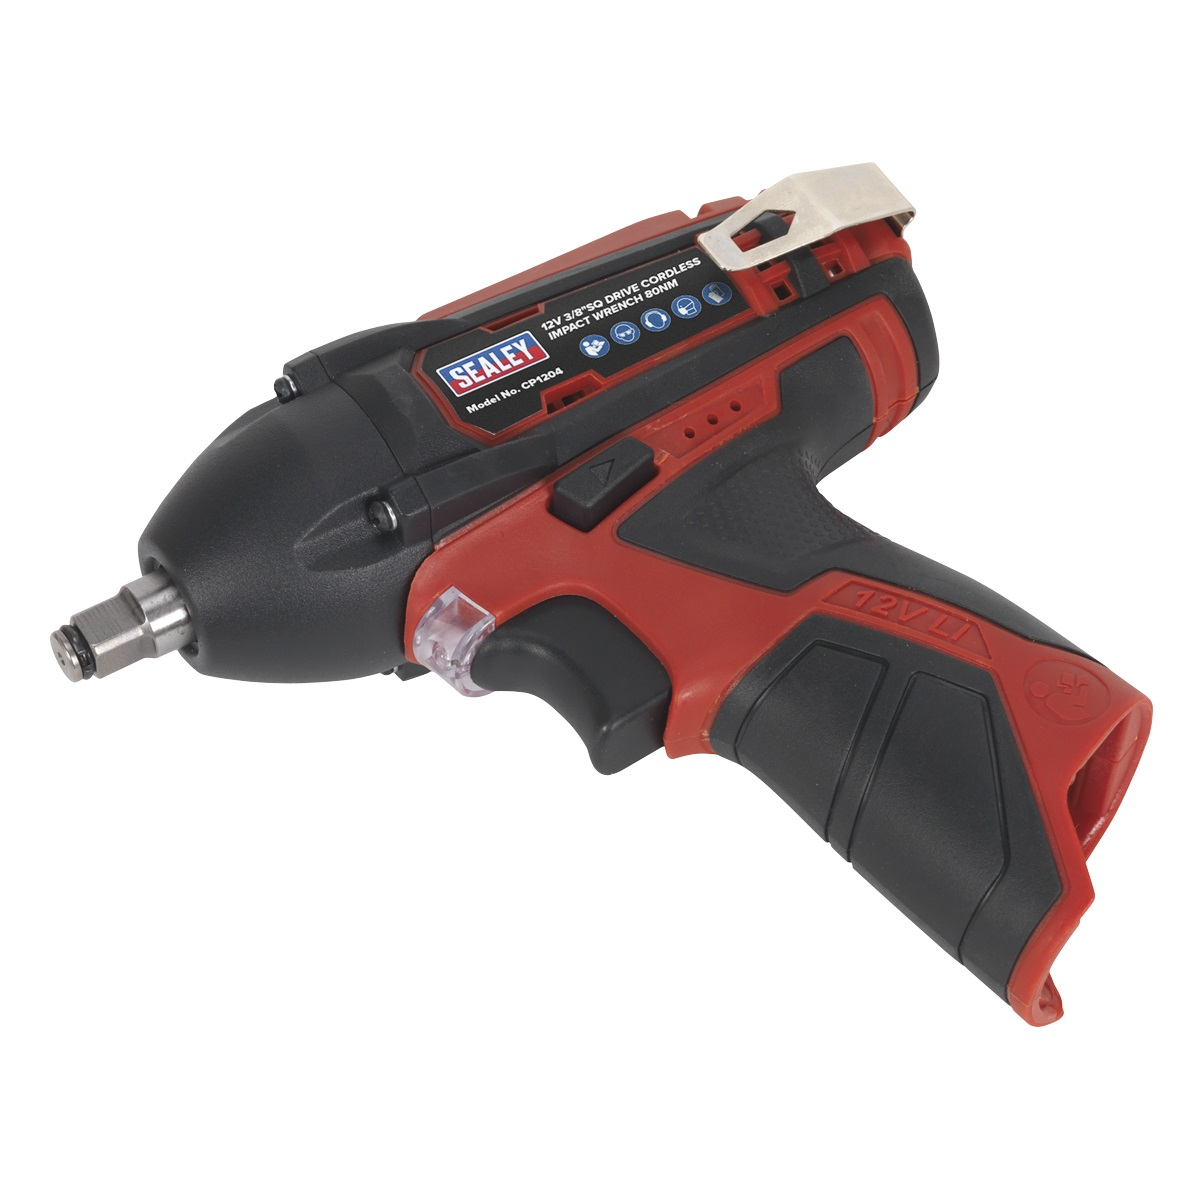 SEALEY Impact Gun 12V Sq Drive 80Nm(Body Only) CP1204 | Compact, lightweight cordless impact gun | toolforce.ie